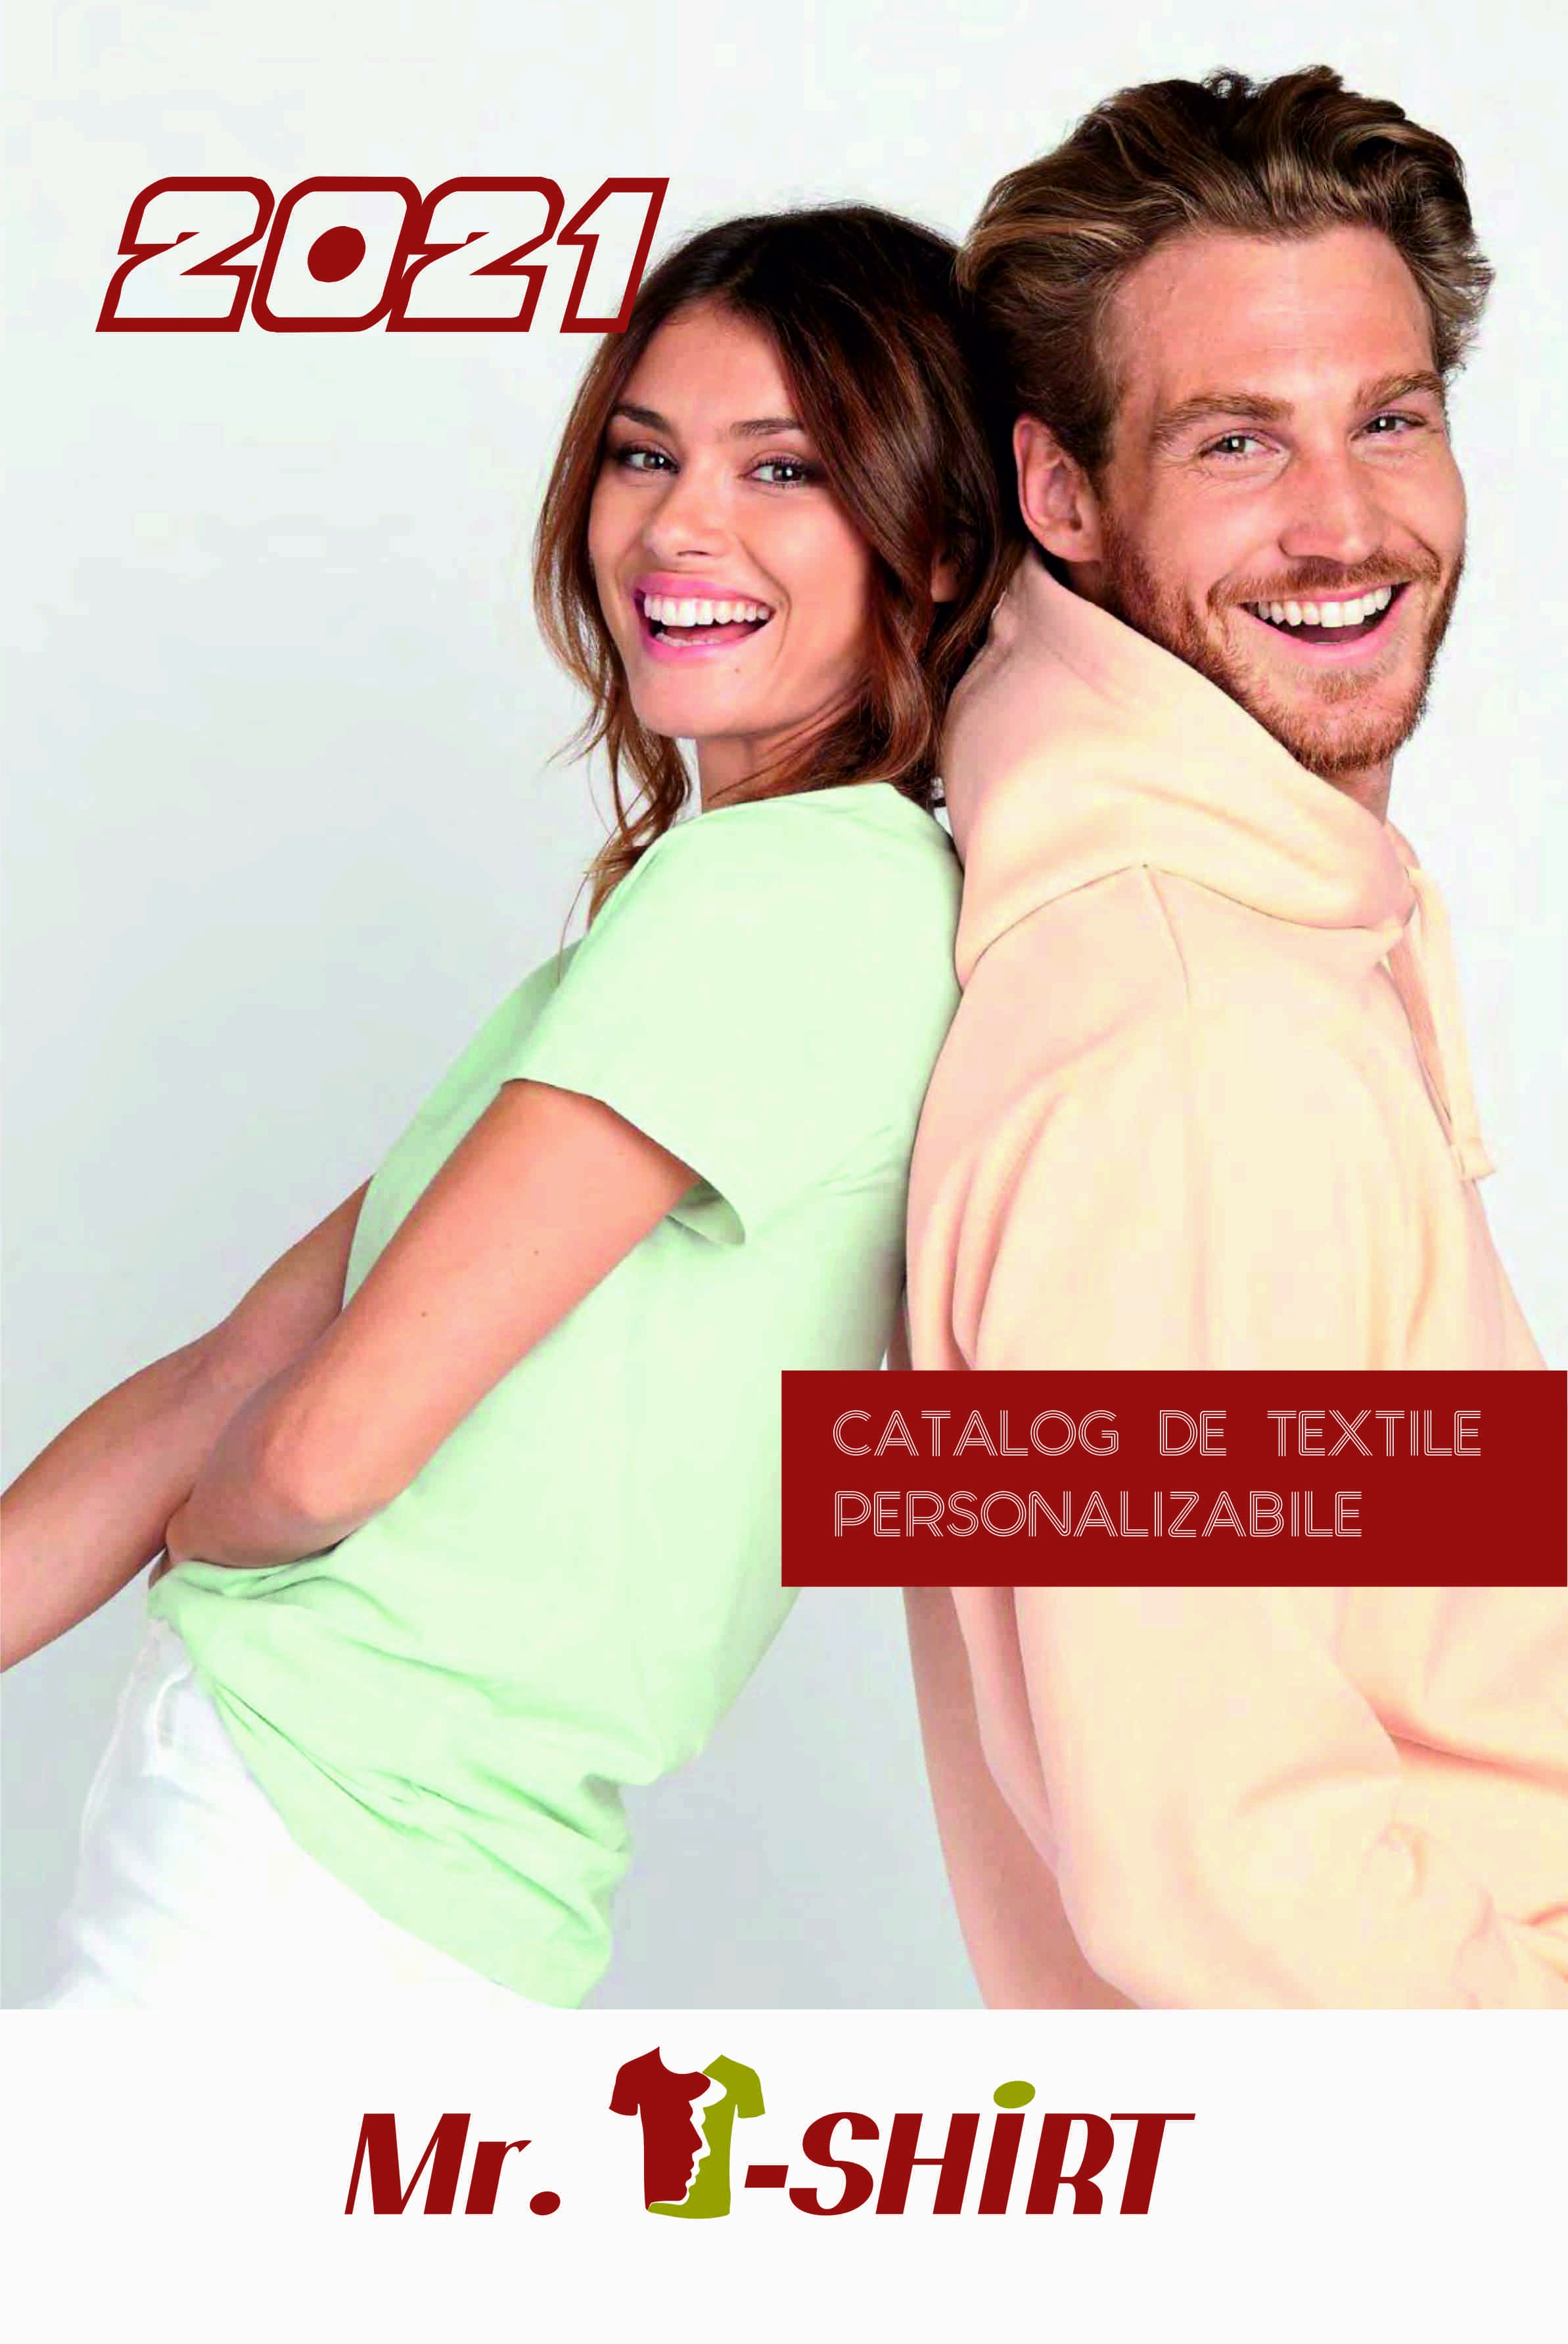 See this Catalog